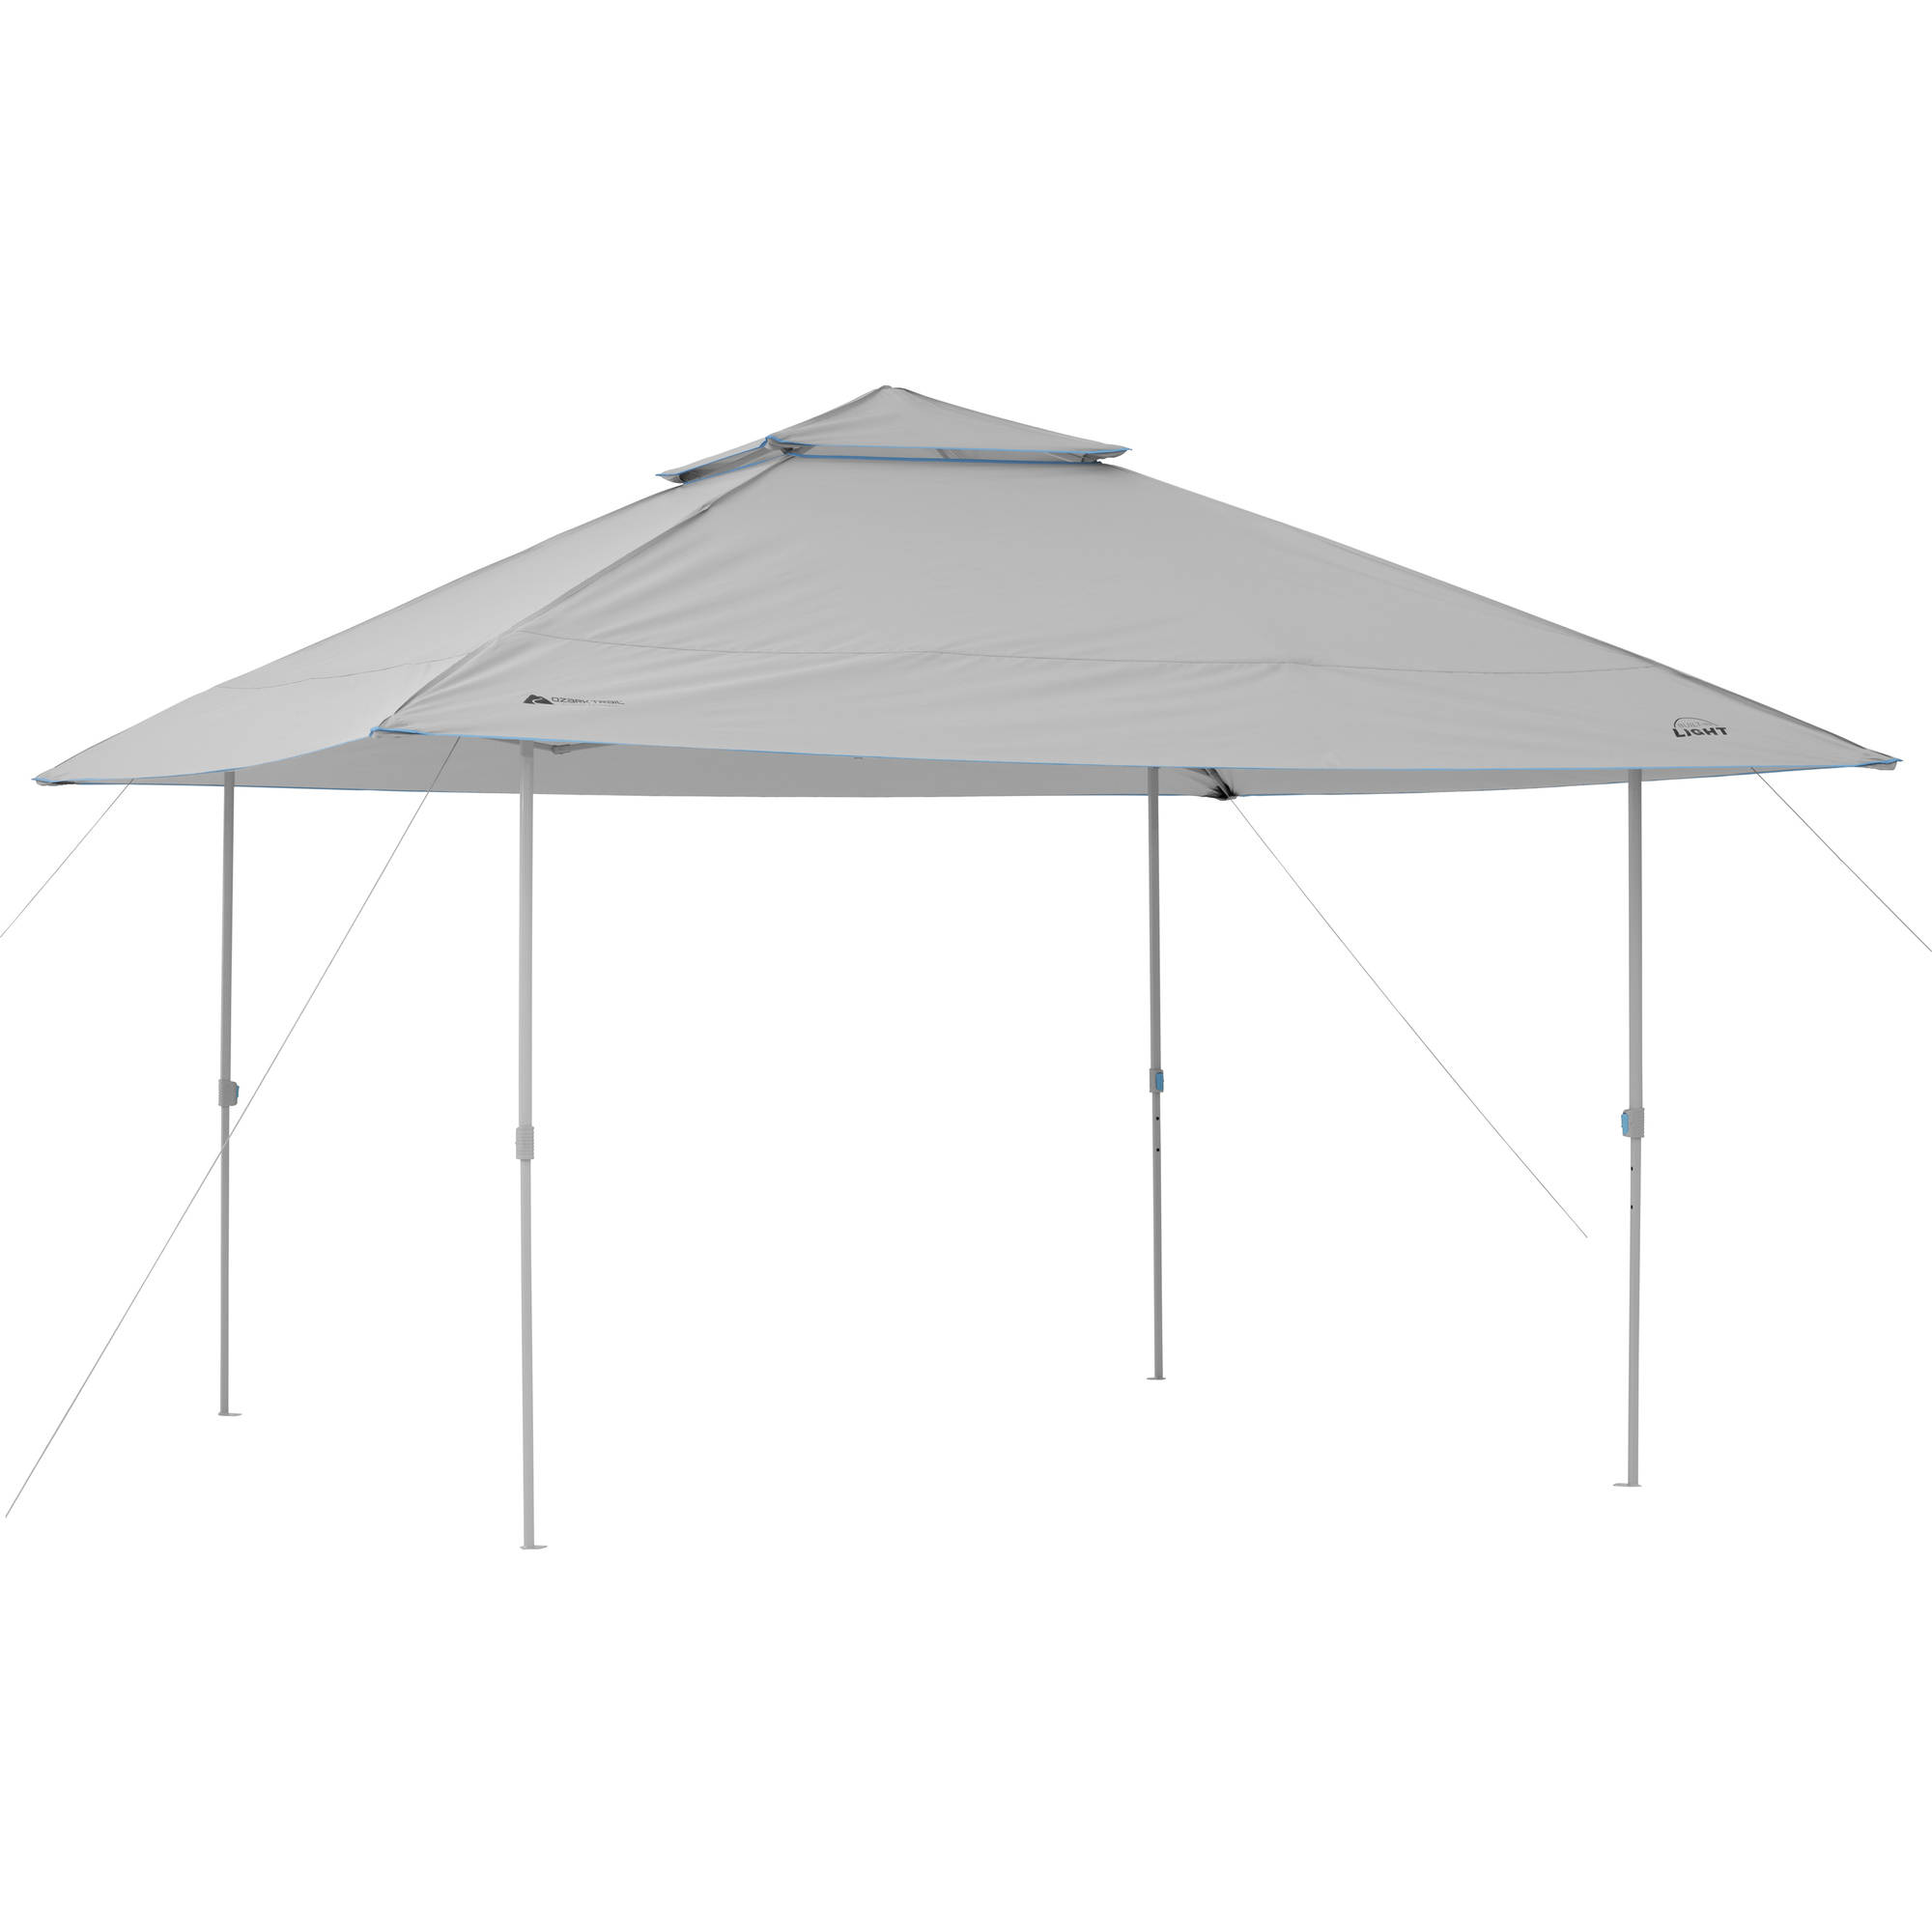 Ozark Trail 13u0027x13u0027 Lighted Instant Canopy  sc 1 st  Walmart & Ozark Trail 13u0027x13u0027 Lighted Instant Canopy - Walmart.com